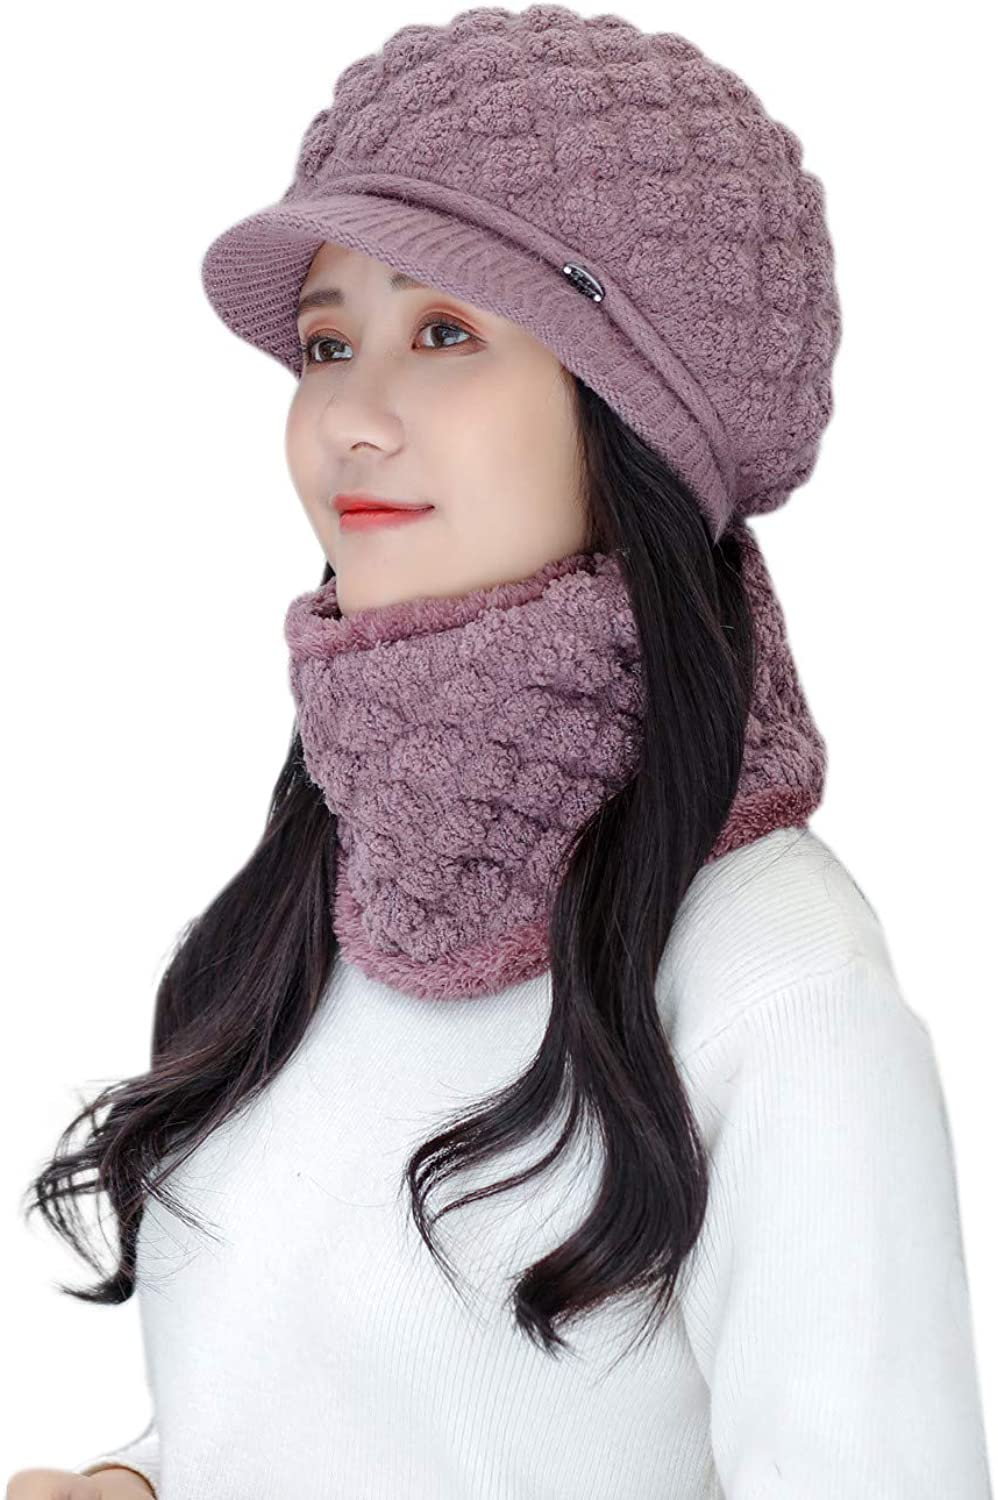 Winter Warm Hat Set, All-Match Berets Cap Scarf Suit, Fashion Knitted Cashmere Scarf - Hats Suit